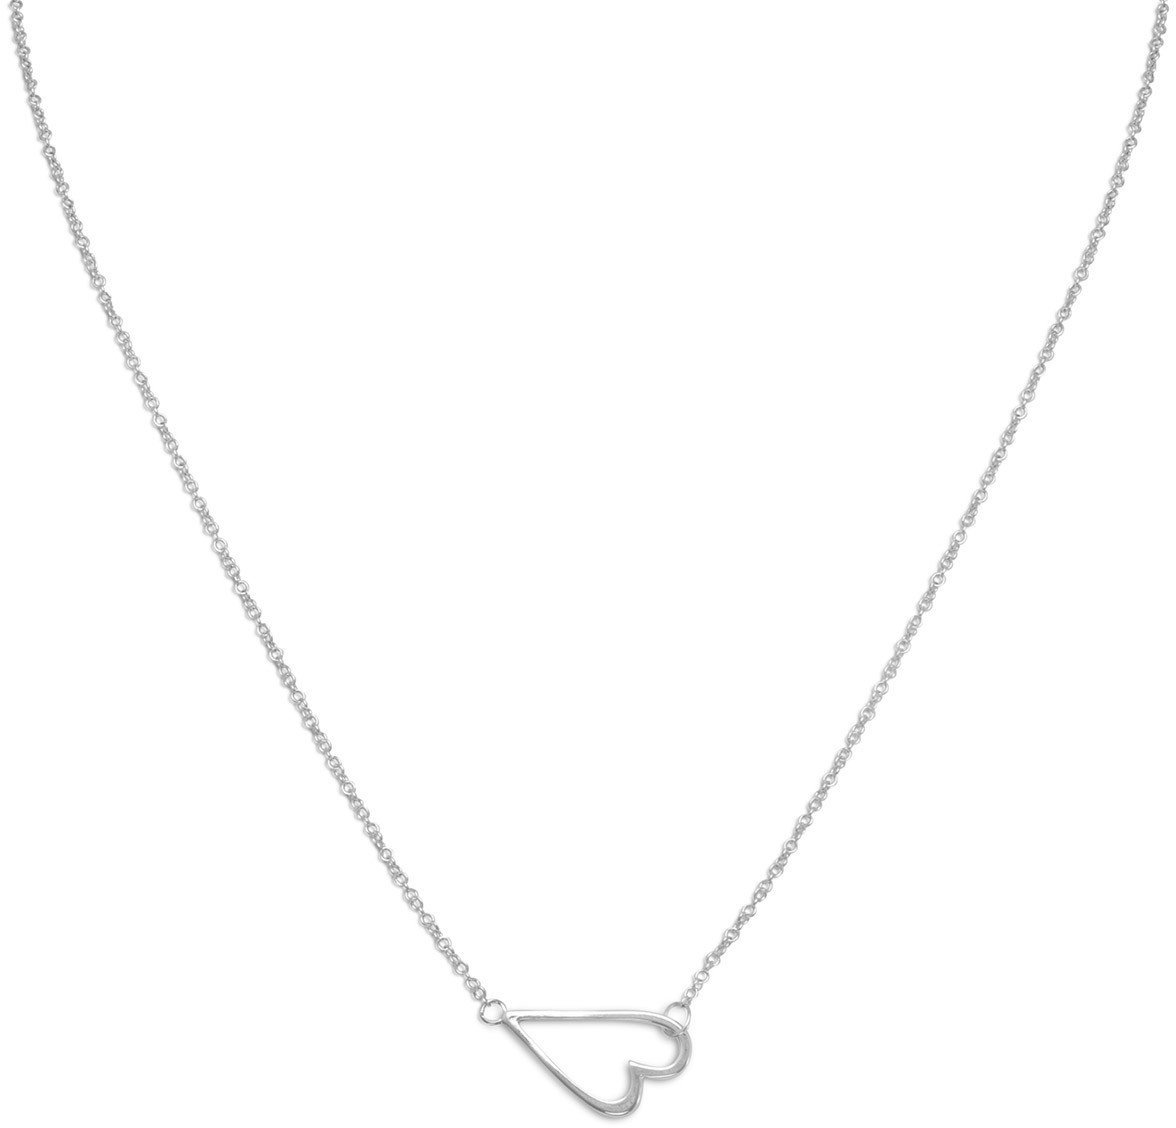 "16"" + 2"" Rhodium Plated Sideways Heart Necklace 925 Sterling Silver"